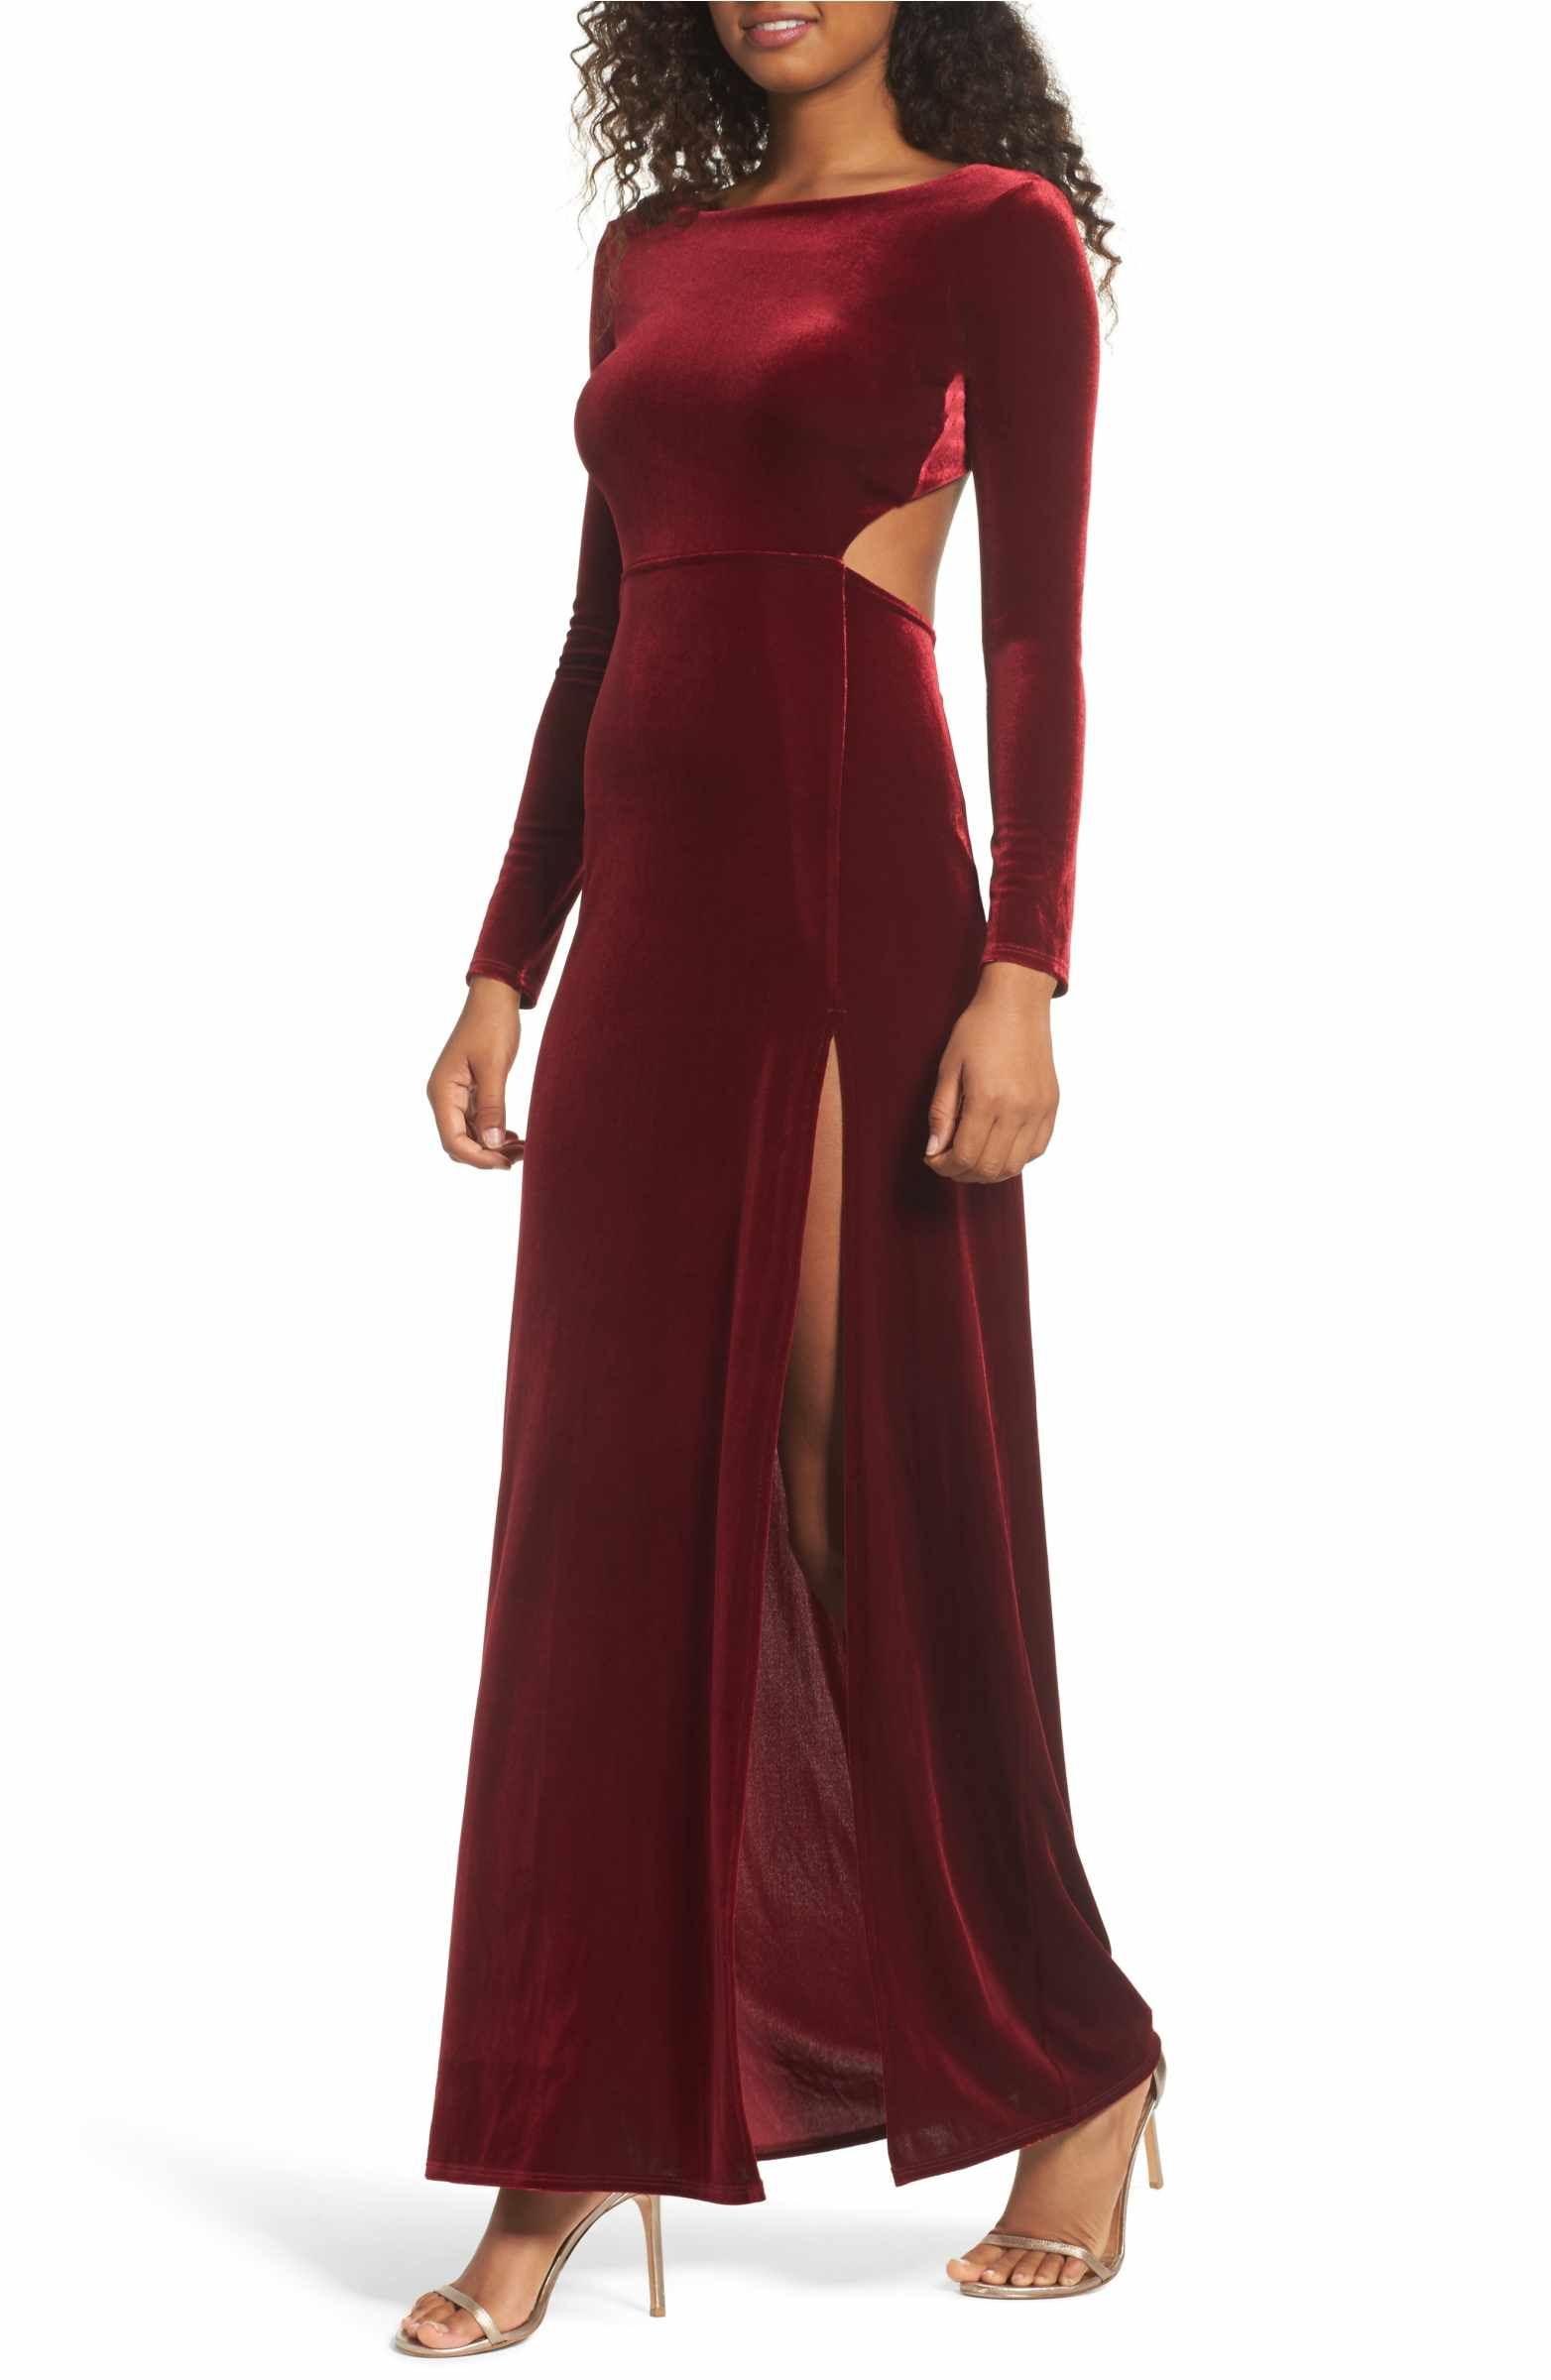 Besame long sleeve velvet maxi dress maxi dresses long sleeve